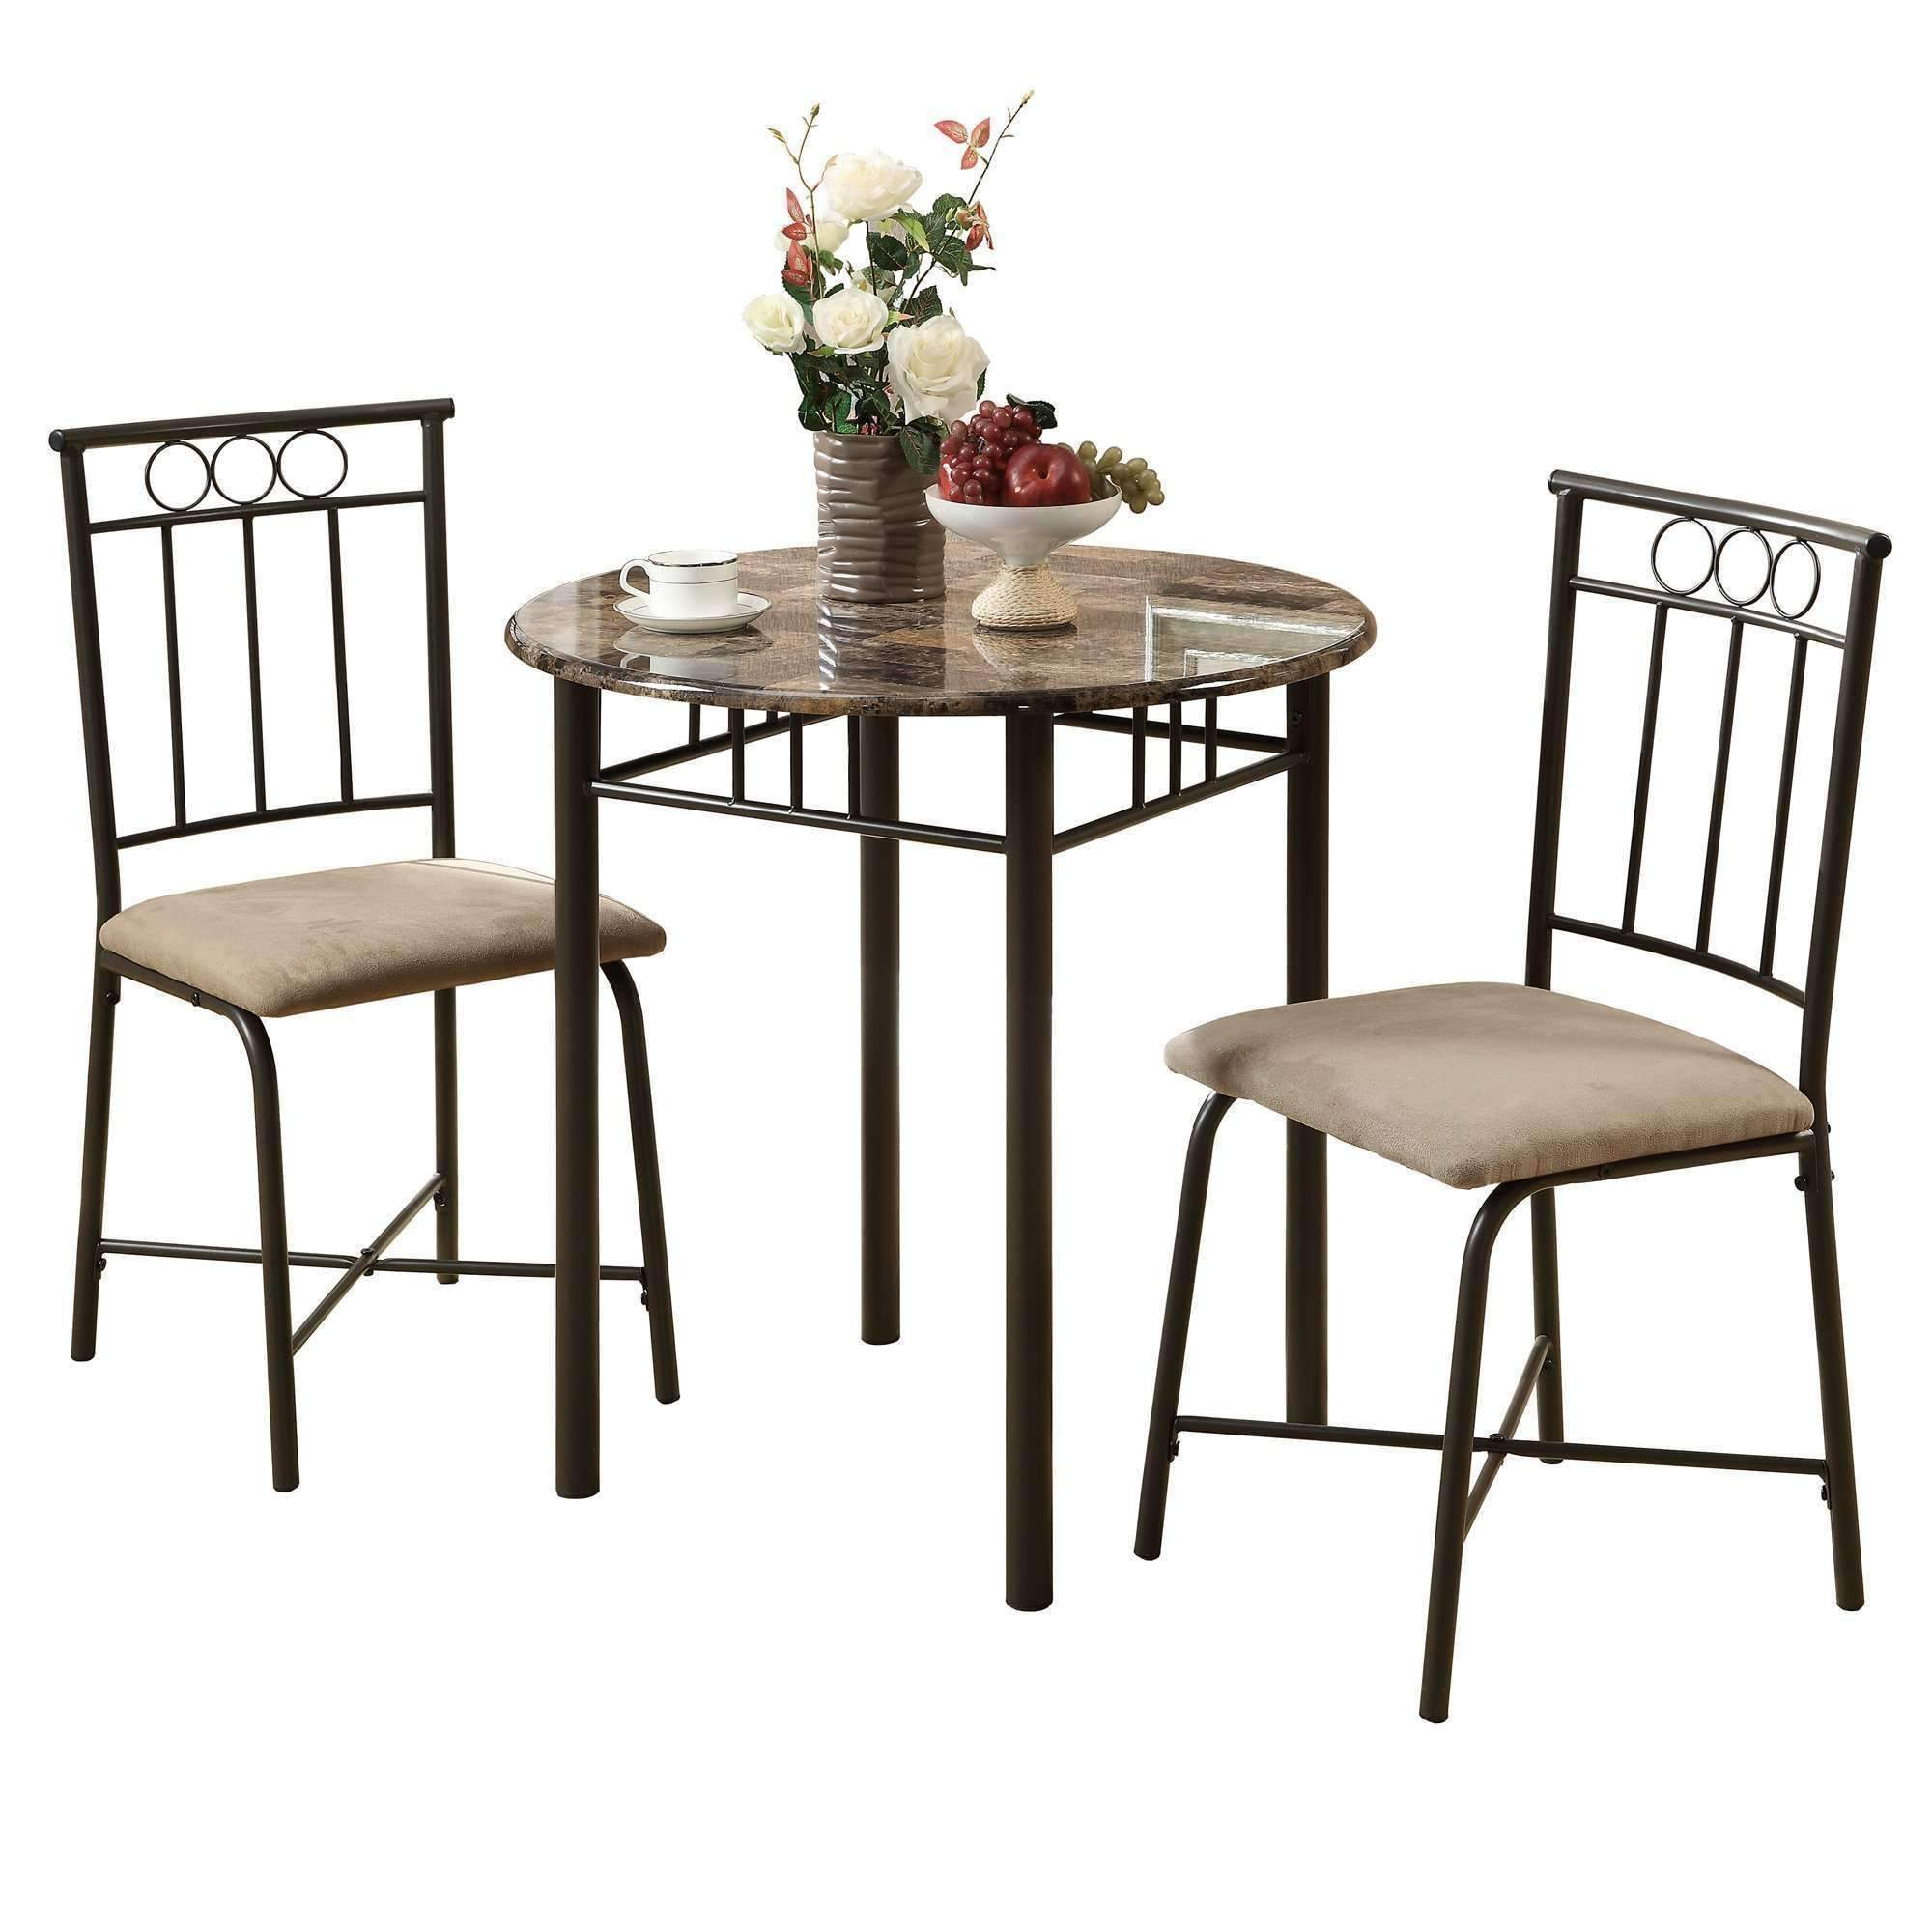 dining set cappuccino marble bronze metal products monarch accent table wicker furniture beach umbrella stand floor wine rack outdoor melbourne globe light fixture mirrored end